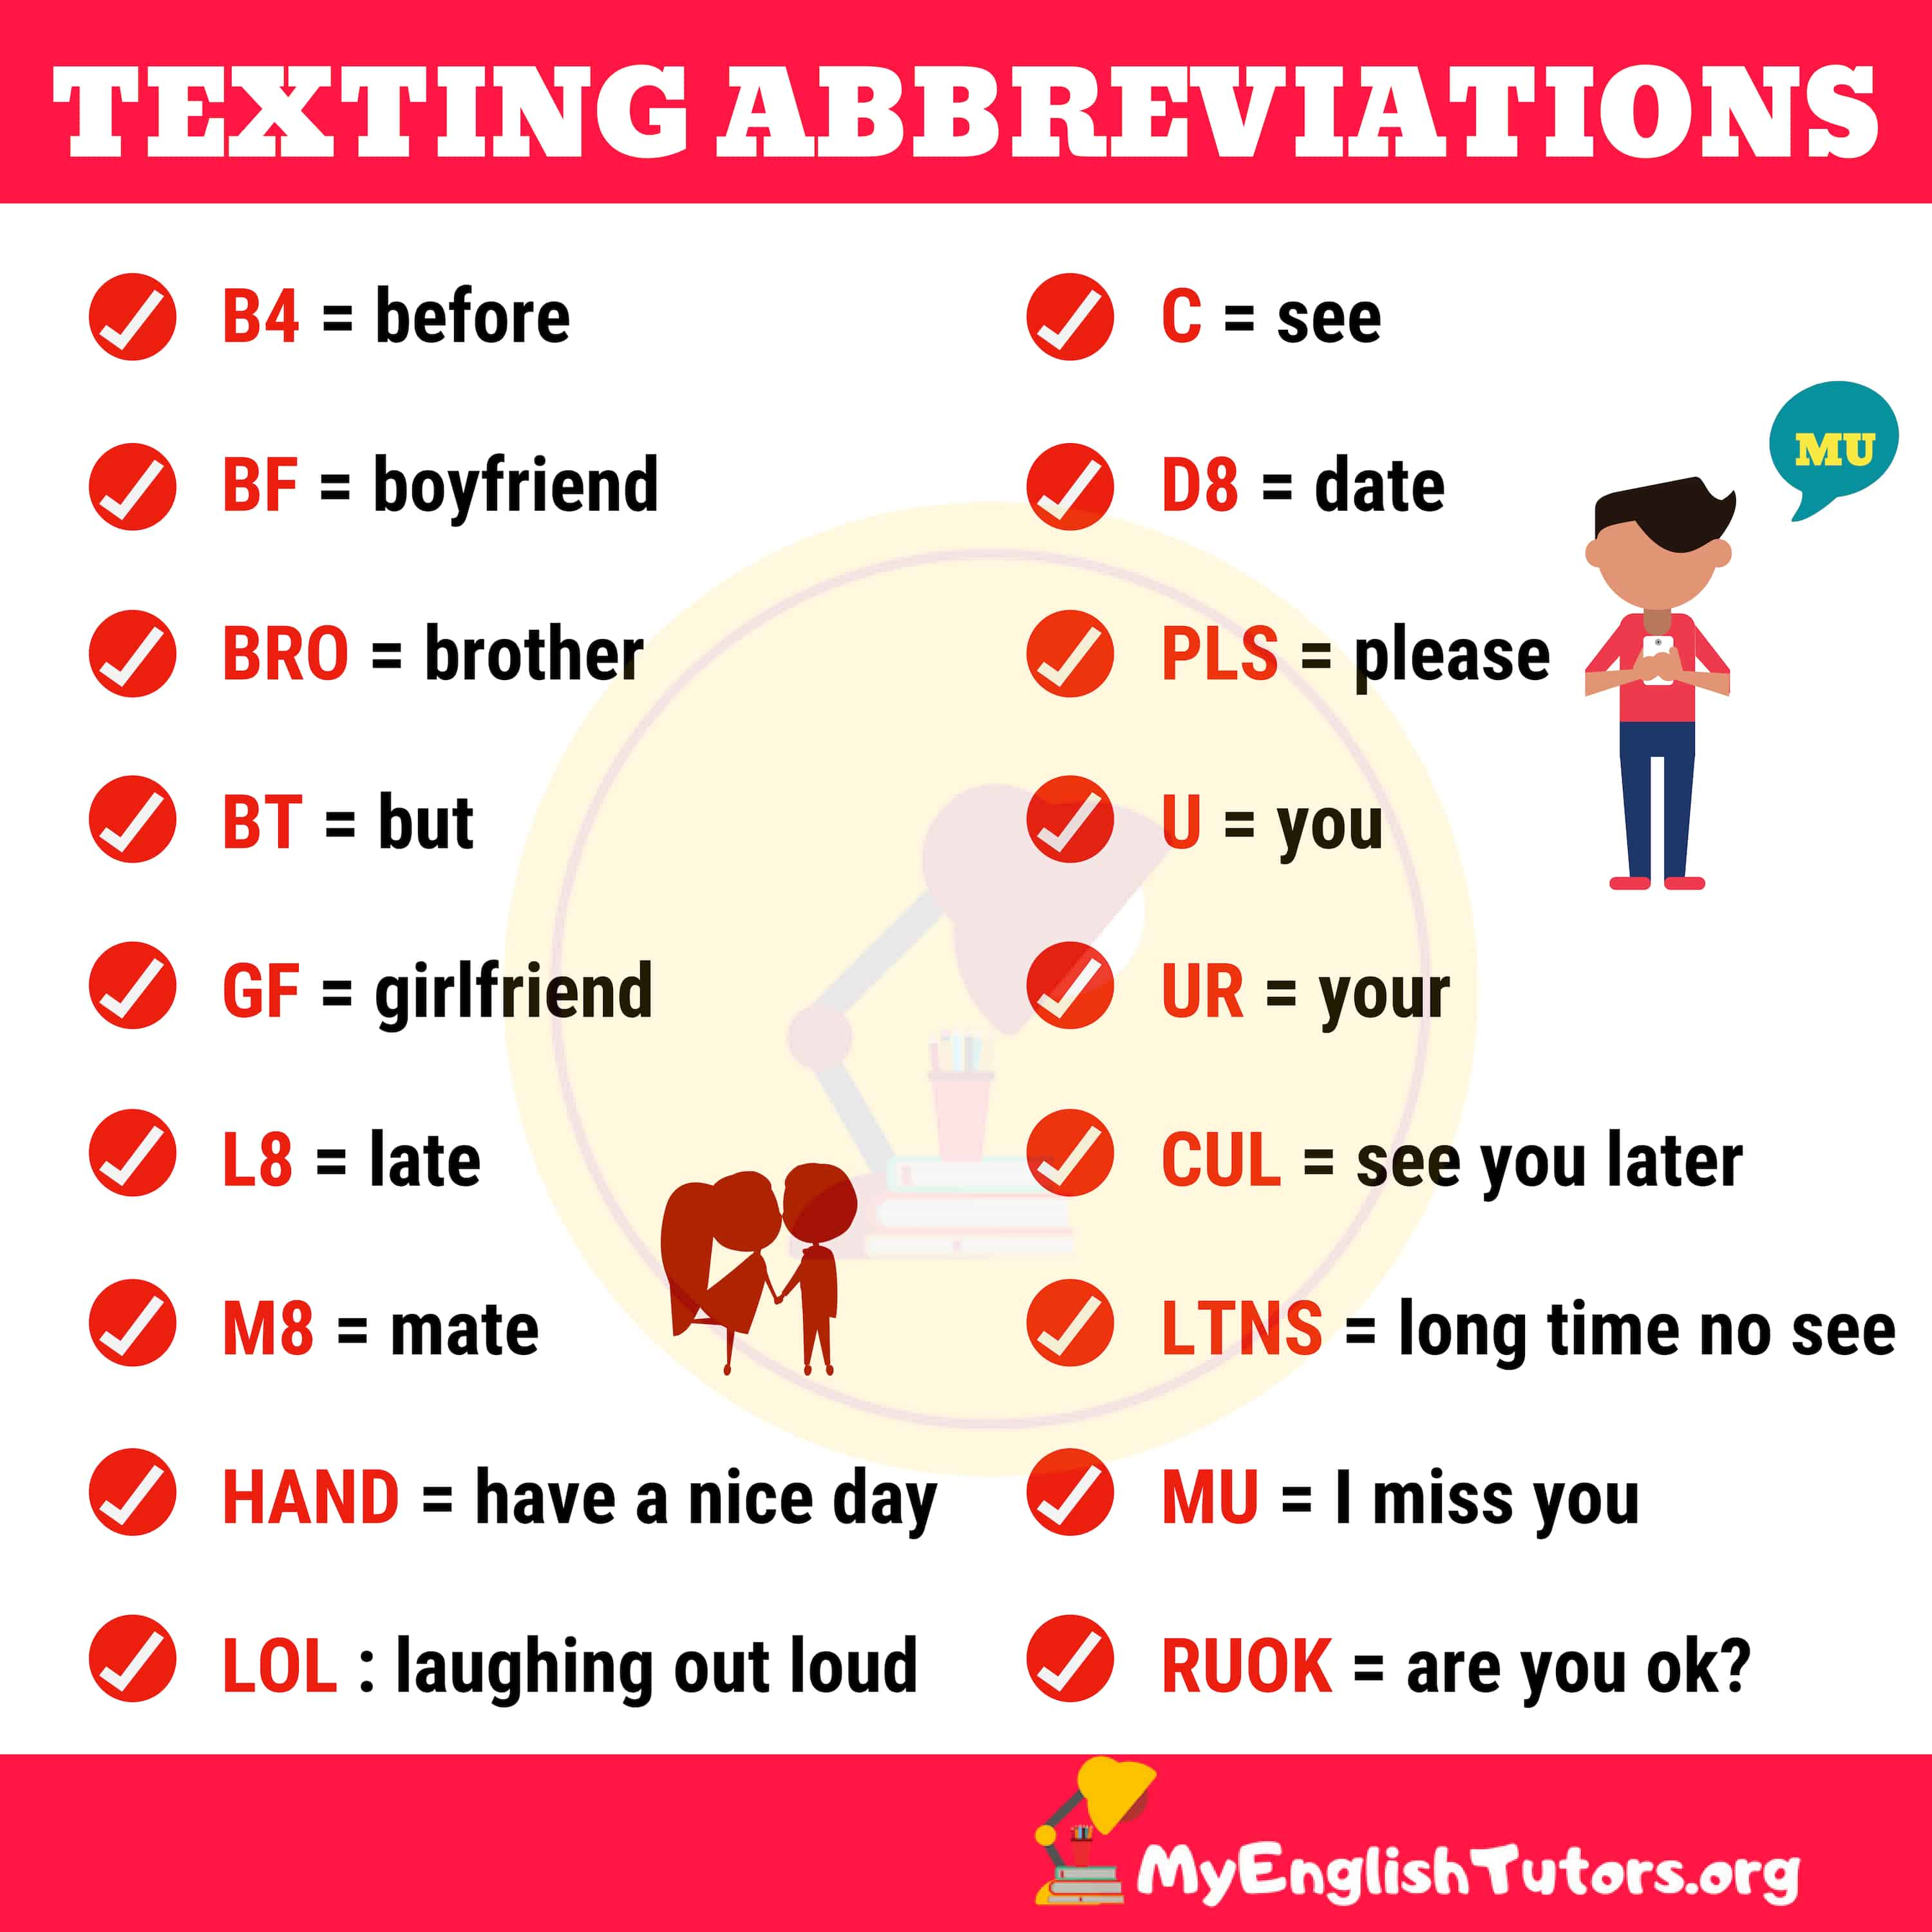 Popular Texting Abbreviations in English